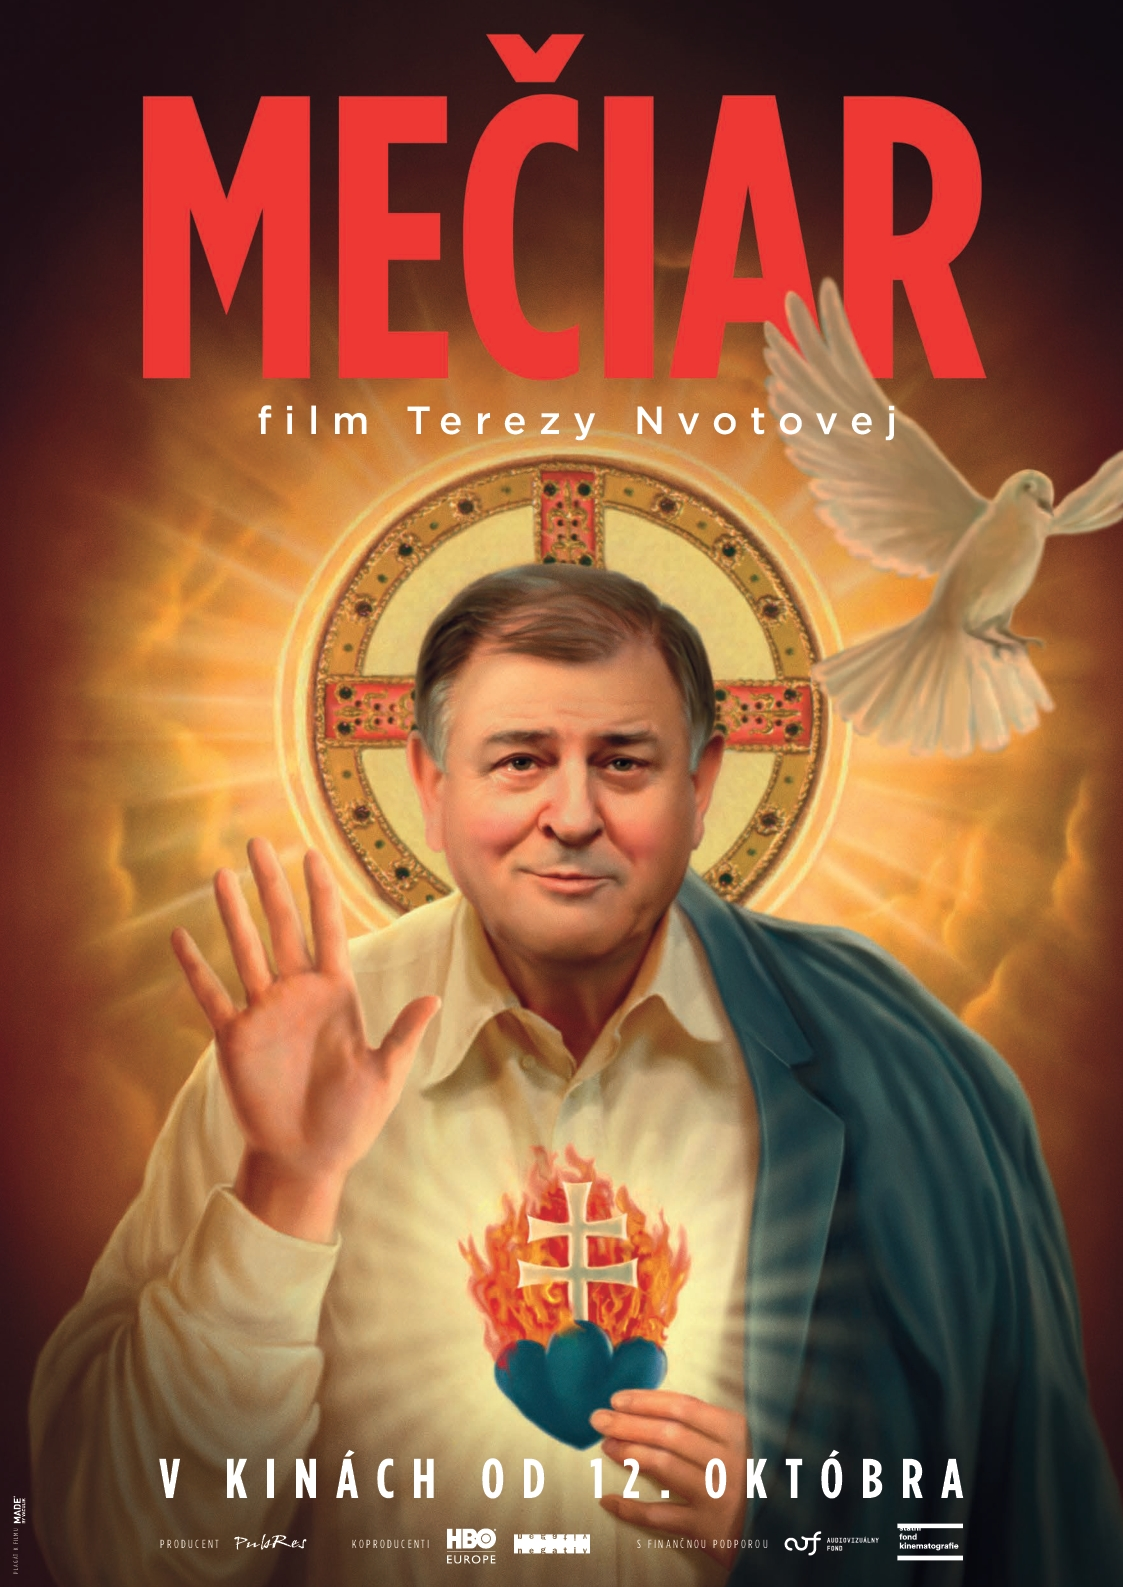 Meciar_Poster_A3_maly.jpg